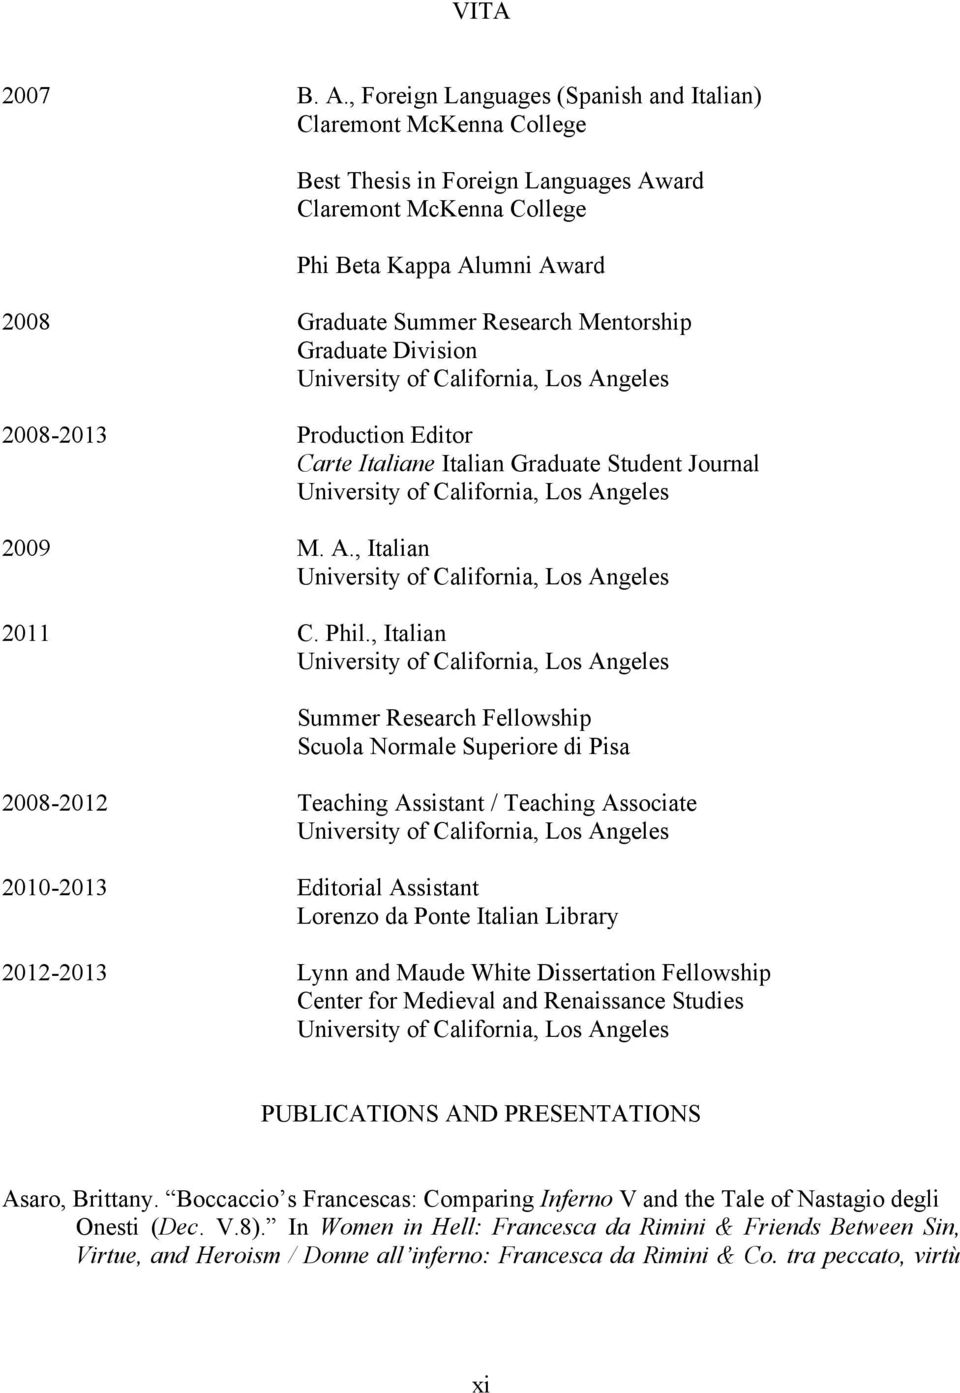 Mentorship Graduate Division University of California, Los Angeles 2008-2013 Production Editor Carte Italiane Italian Graduate Student Journal University of California, Los Angeles 2009 M. A., Italian University of California, Los Angeles 2011 C.